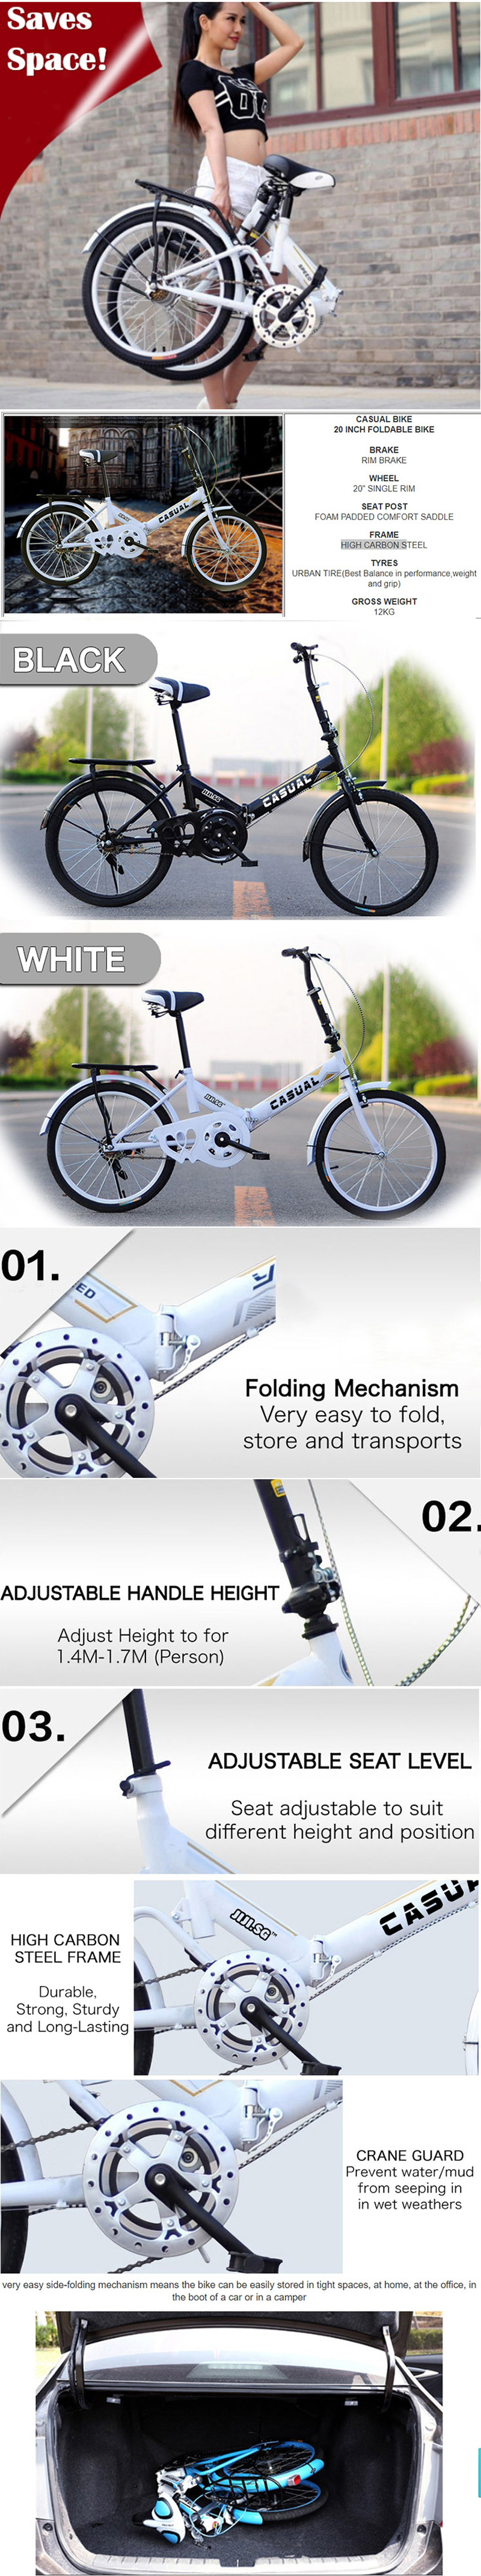 Casual-Bicycle-listing-removed-gear-and-stb.jpg